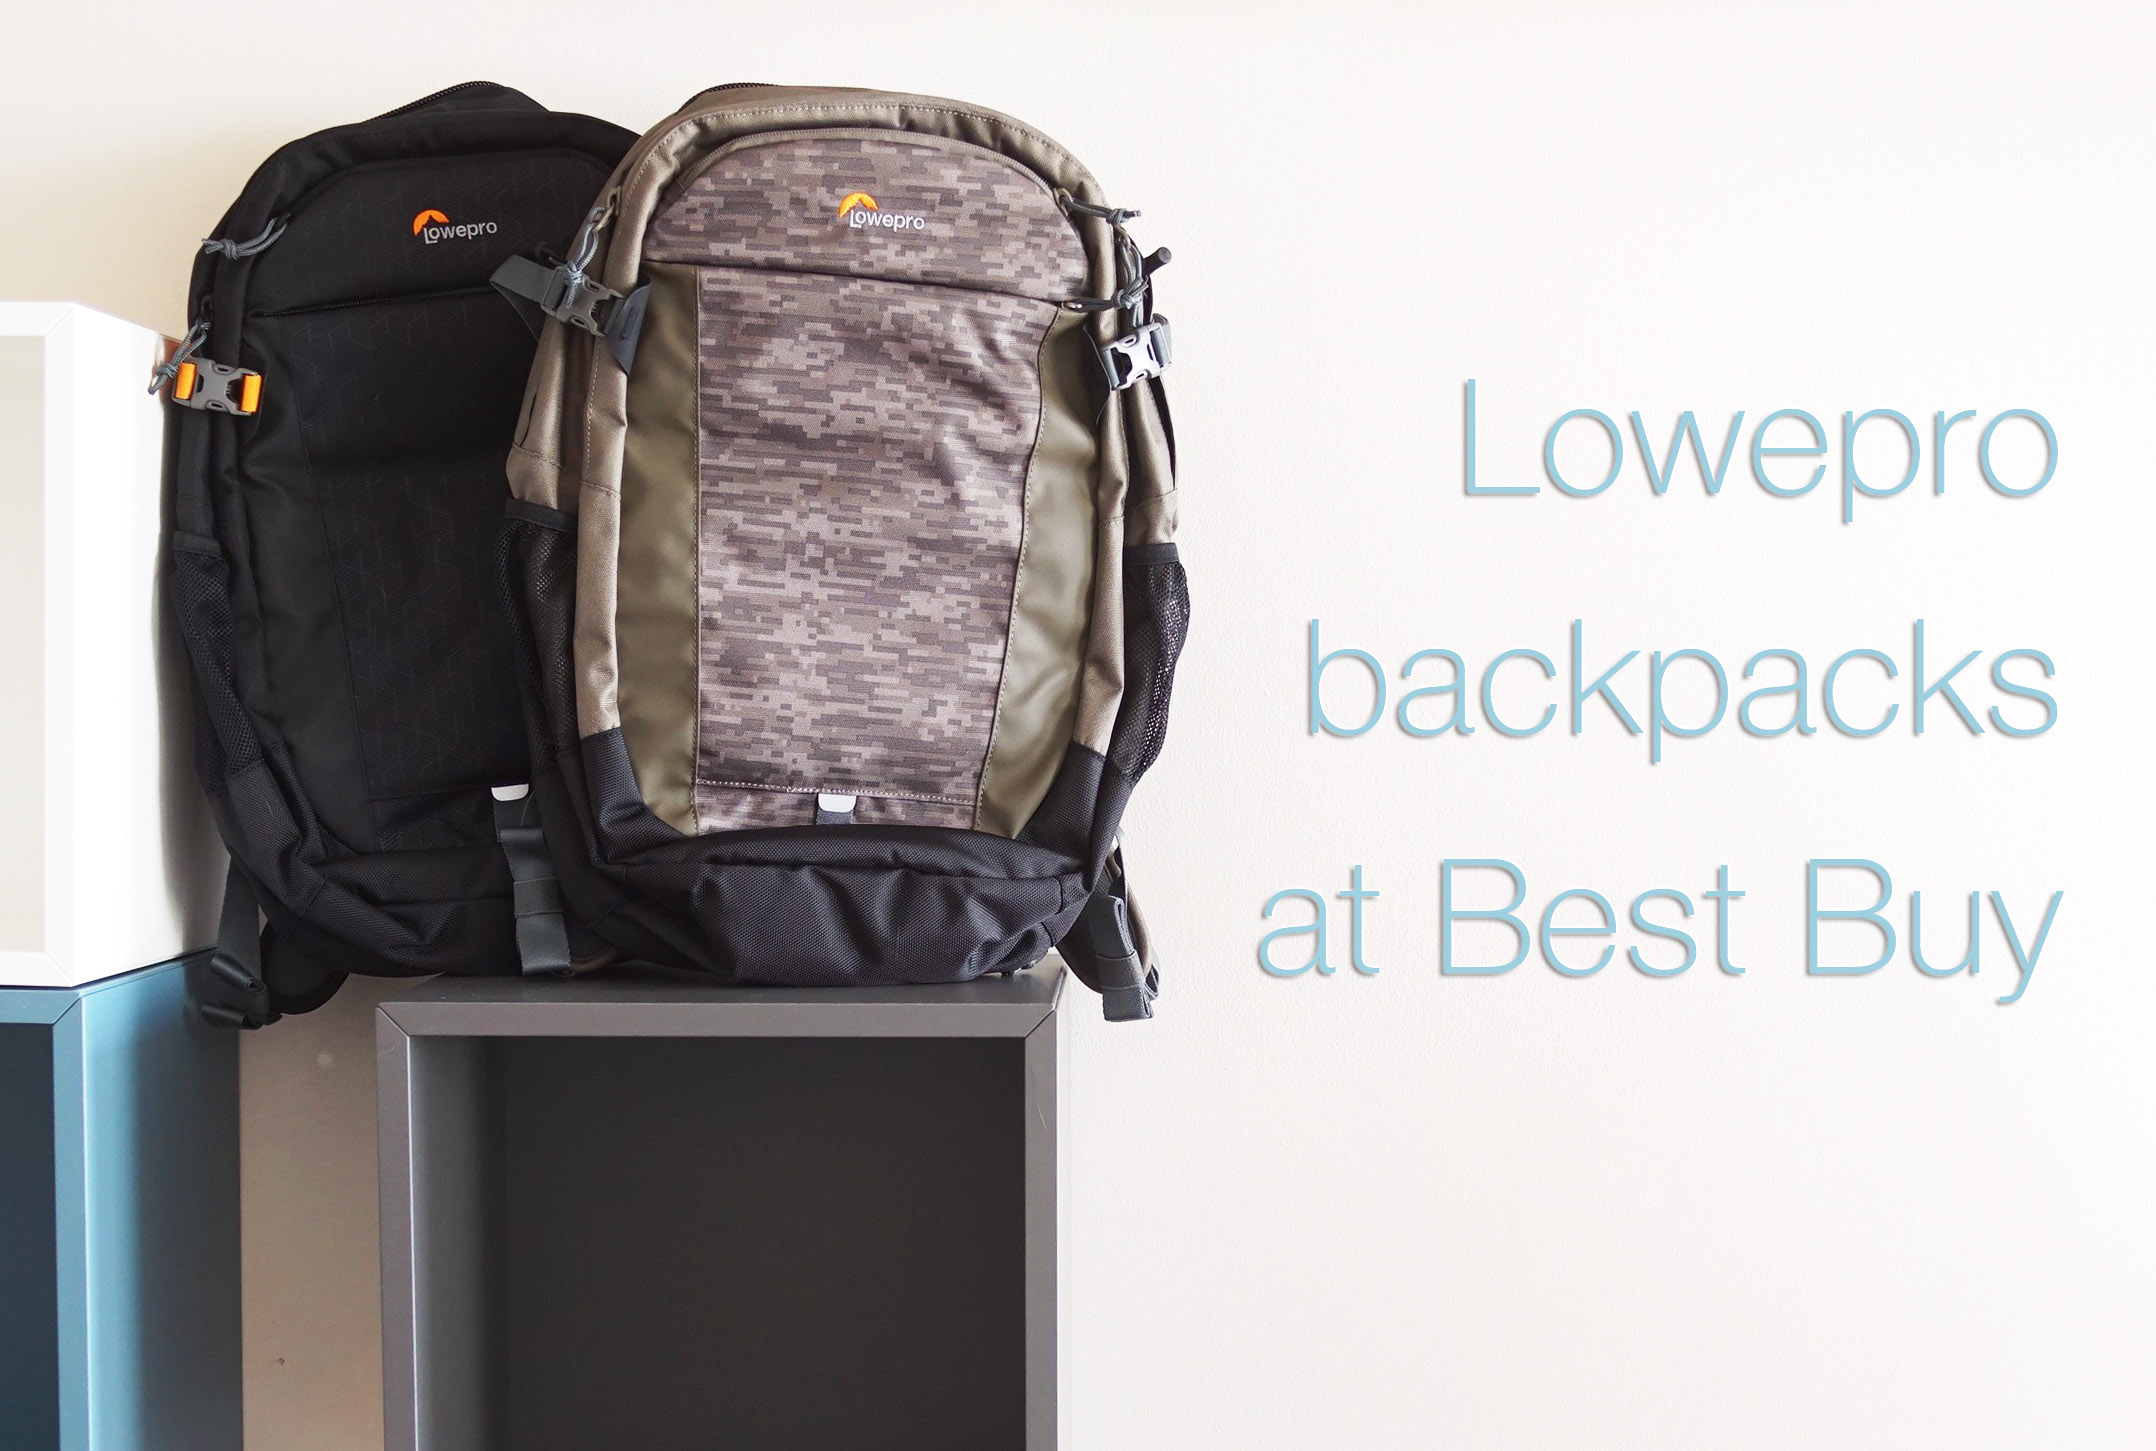 67f90ece01 If you're a travelling adventurer, it's hard to find a bag that's more  perfect than Lowepro backpacks. Photography enthusiasts will recognize the  brand from ...